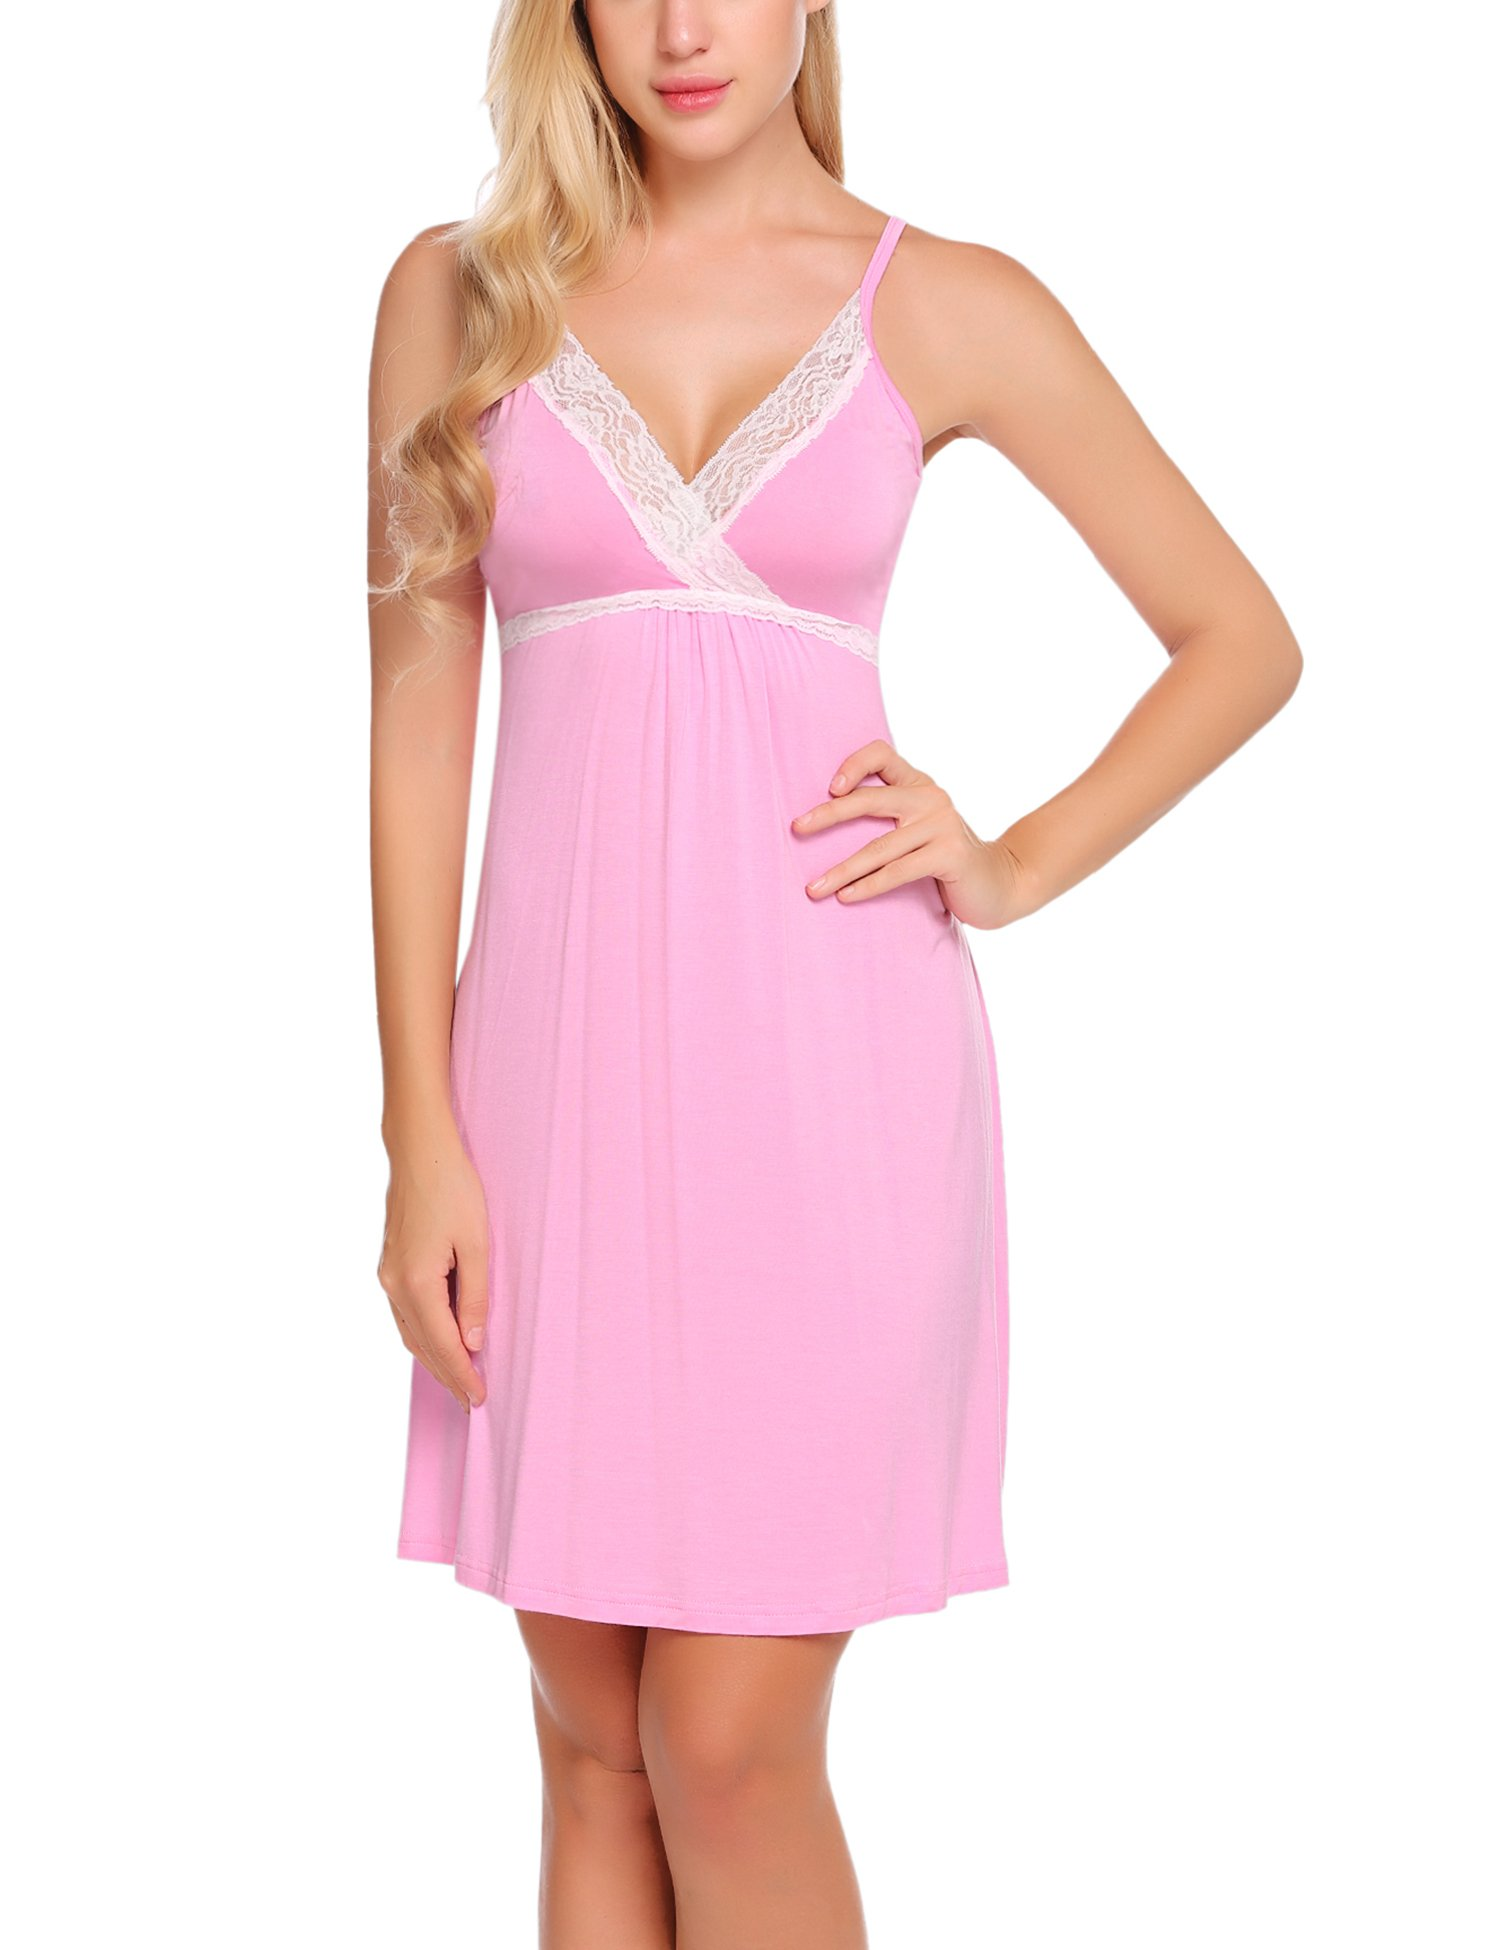 Hotouch Womens Nightgowns Sexy Sleepwear Cami Lace Slip Dress Pink M